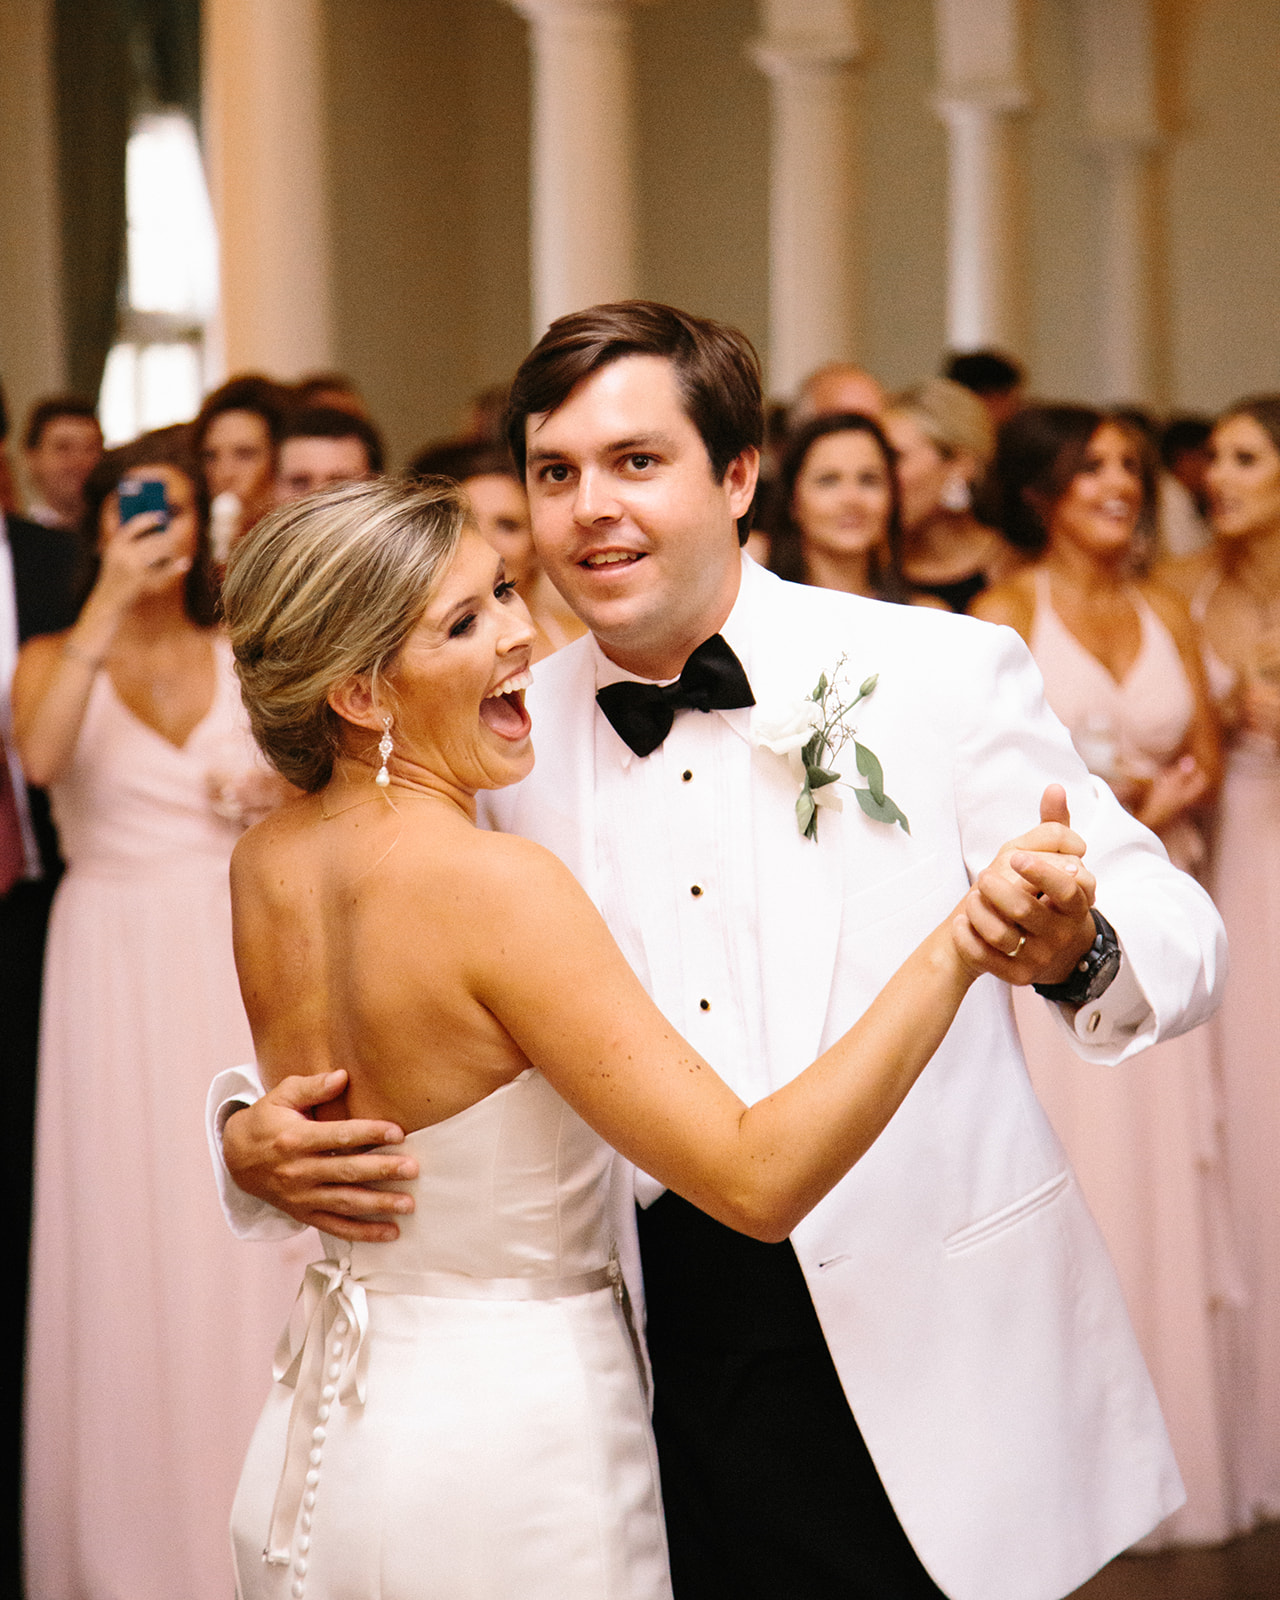 Handley Breaux Designs | Rachel and Noah Ray Photography | Virginia and David